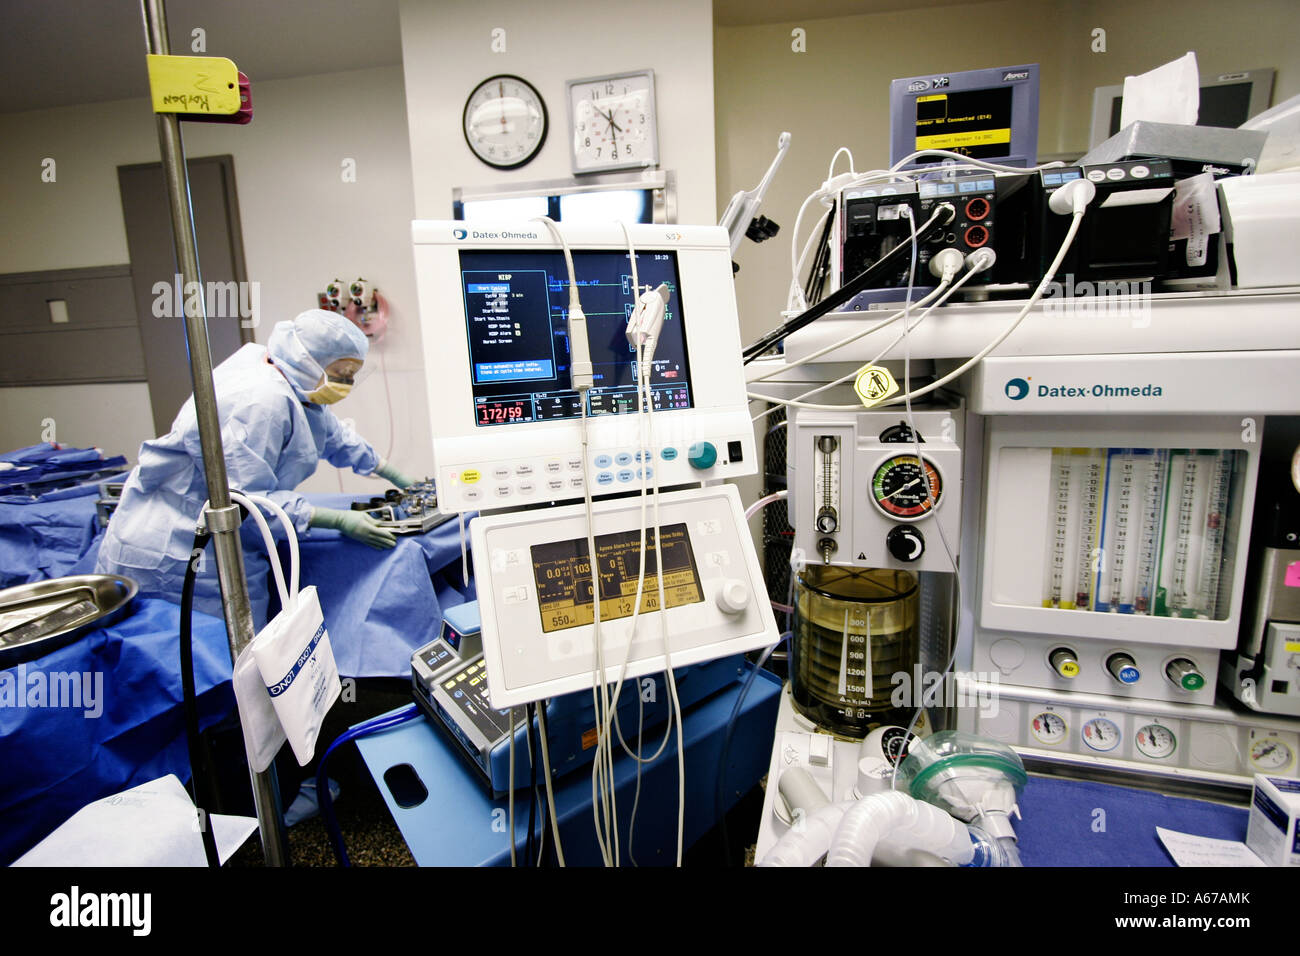 machines for monitoring vital signs and regulating dosages used by anesthesiologist in operating room - Stock Image